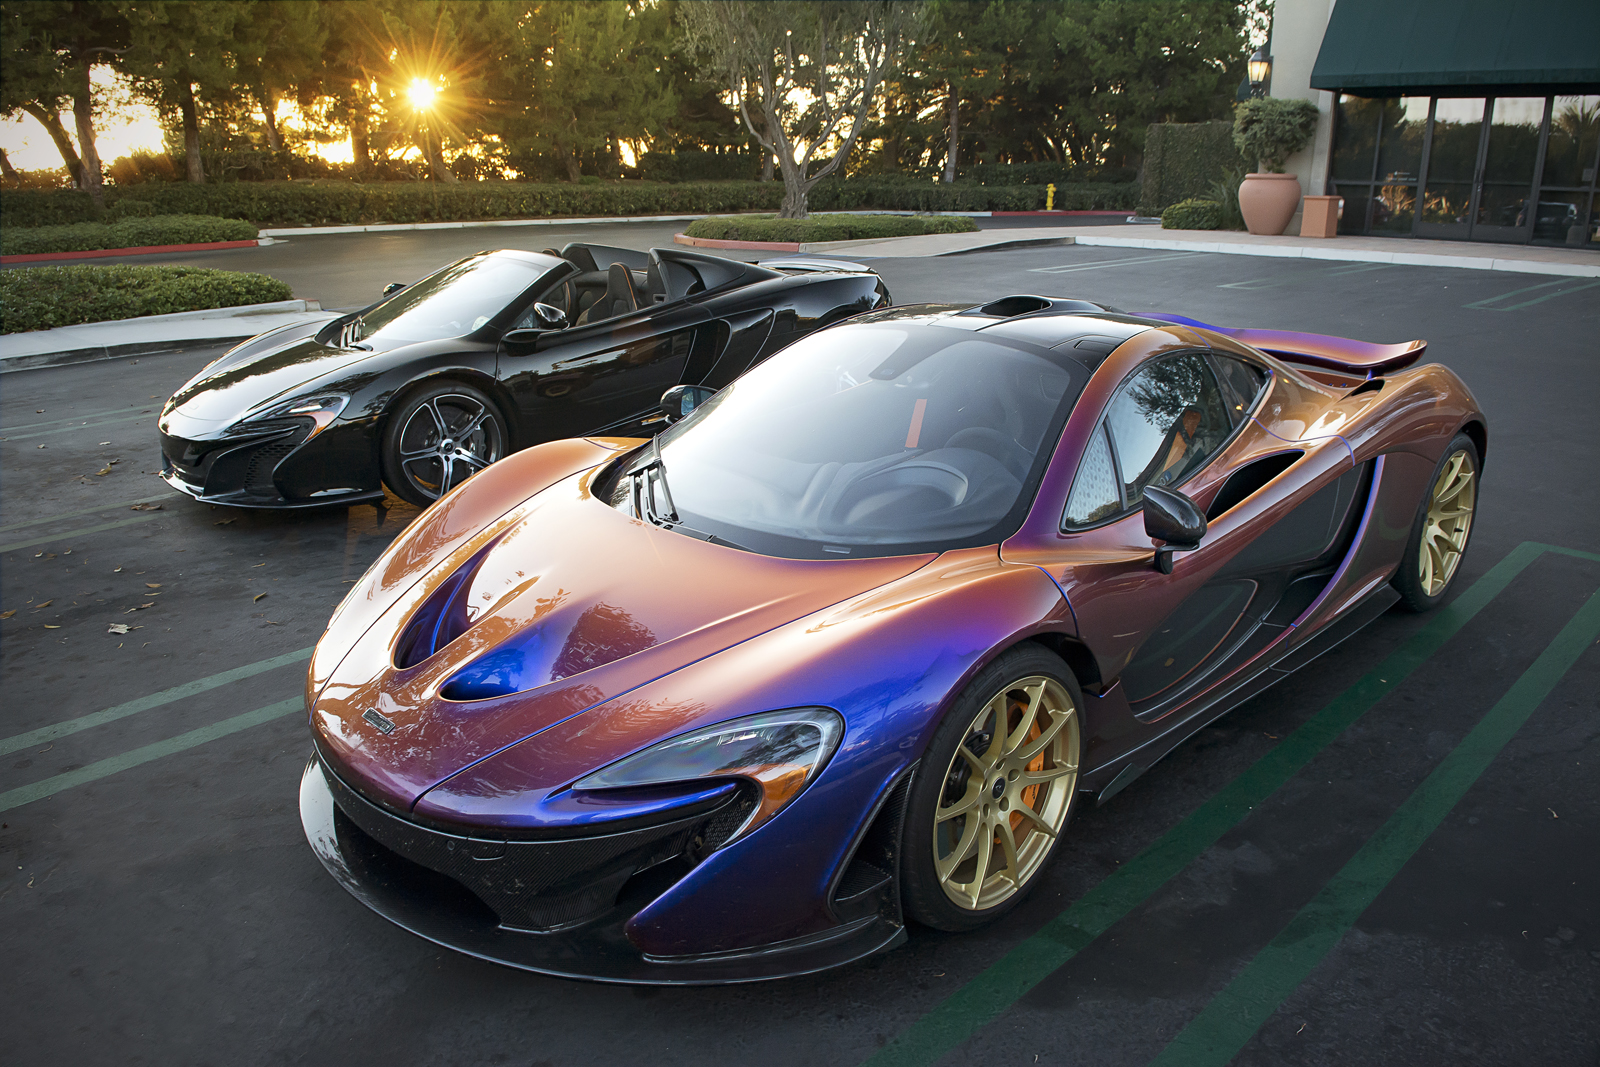 Chameleon Mclaren P1 Belonging To Los Angeles Angels